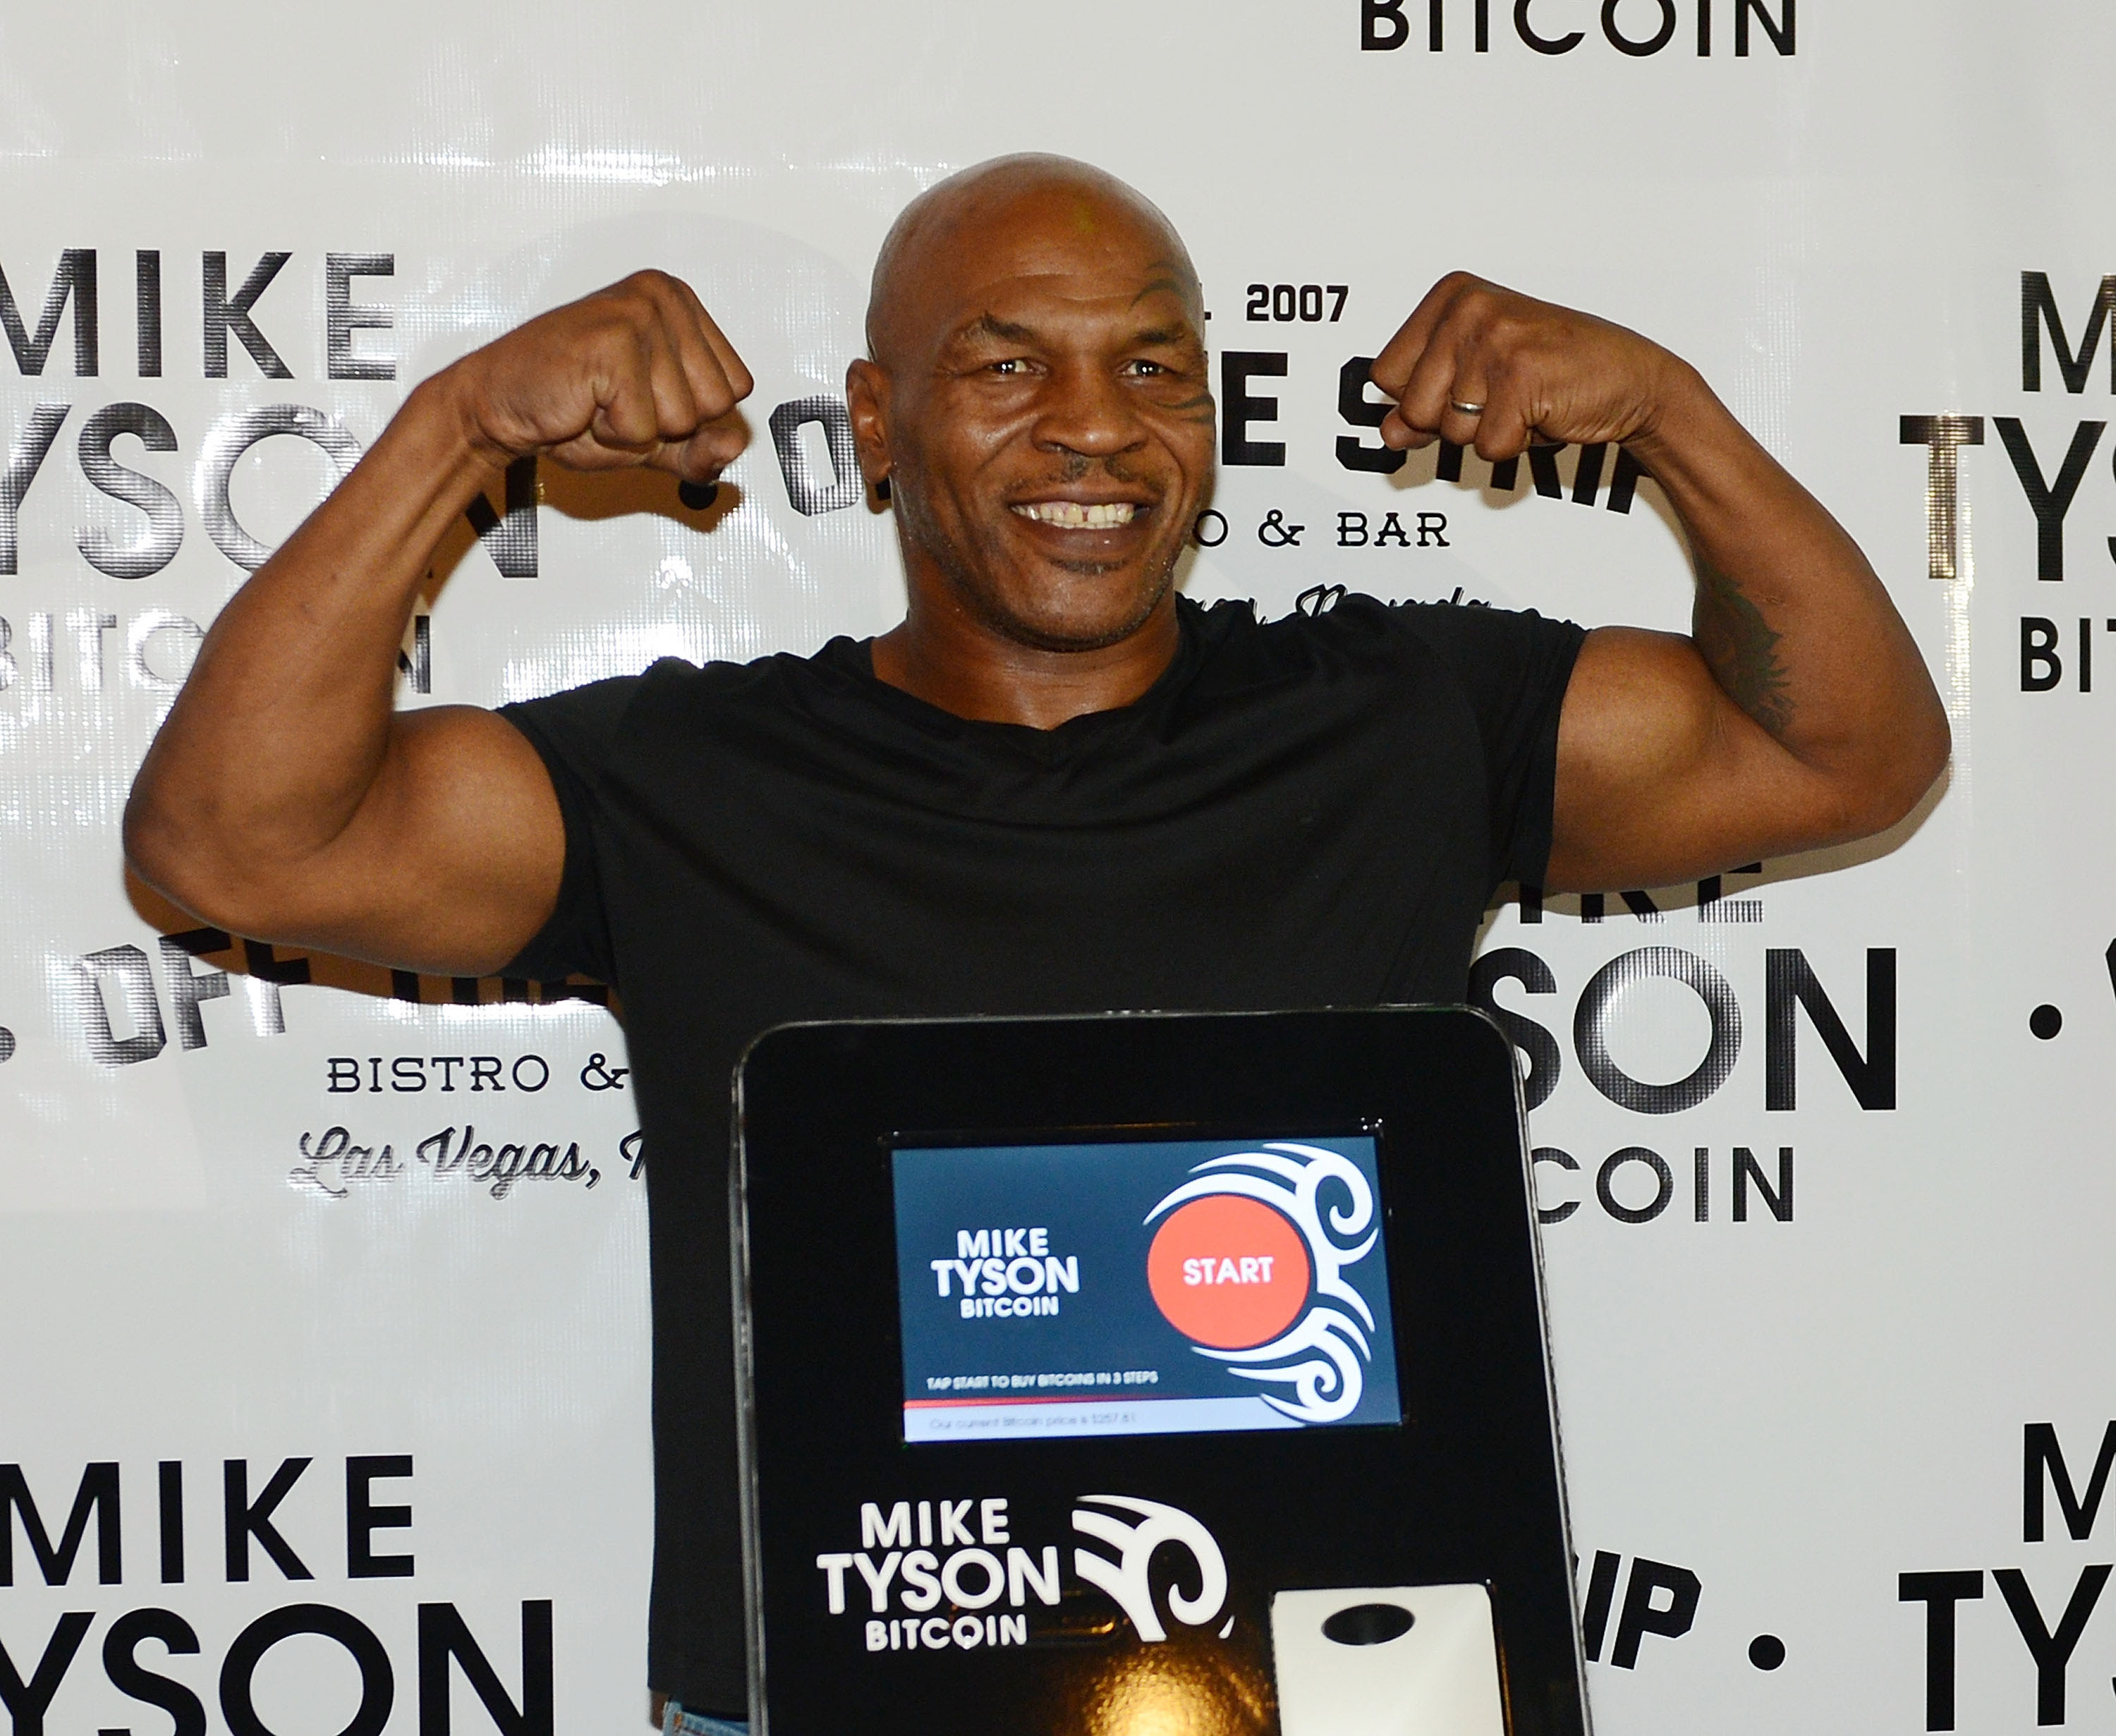 Mike Tyson Unveils World's First Official Mike Tyson Bitcoin ATM at Off The Strip at The Linq - Food & Beverage Magazine fb101.com3000 × 2461Search by image MIKE TYSON UNVEILS WORLD'S FIRST OFFICIAL MIKE TYSON BITCOIN ATM AT OFF THE TRIP AT THE LINQ WHAT: Bitcoin Direct, LLC, a subsidiary [...]